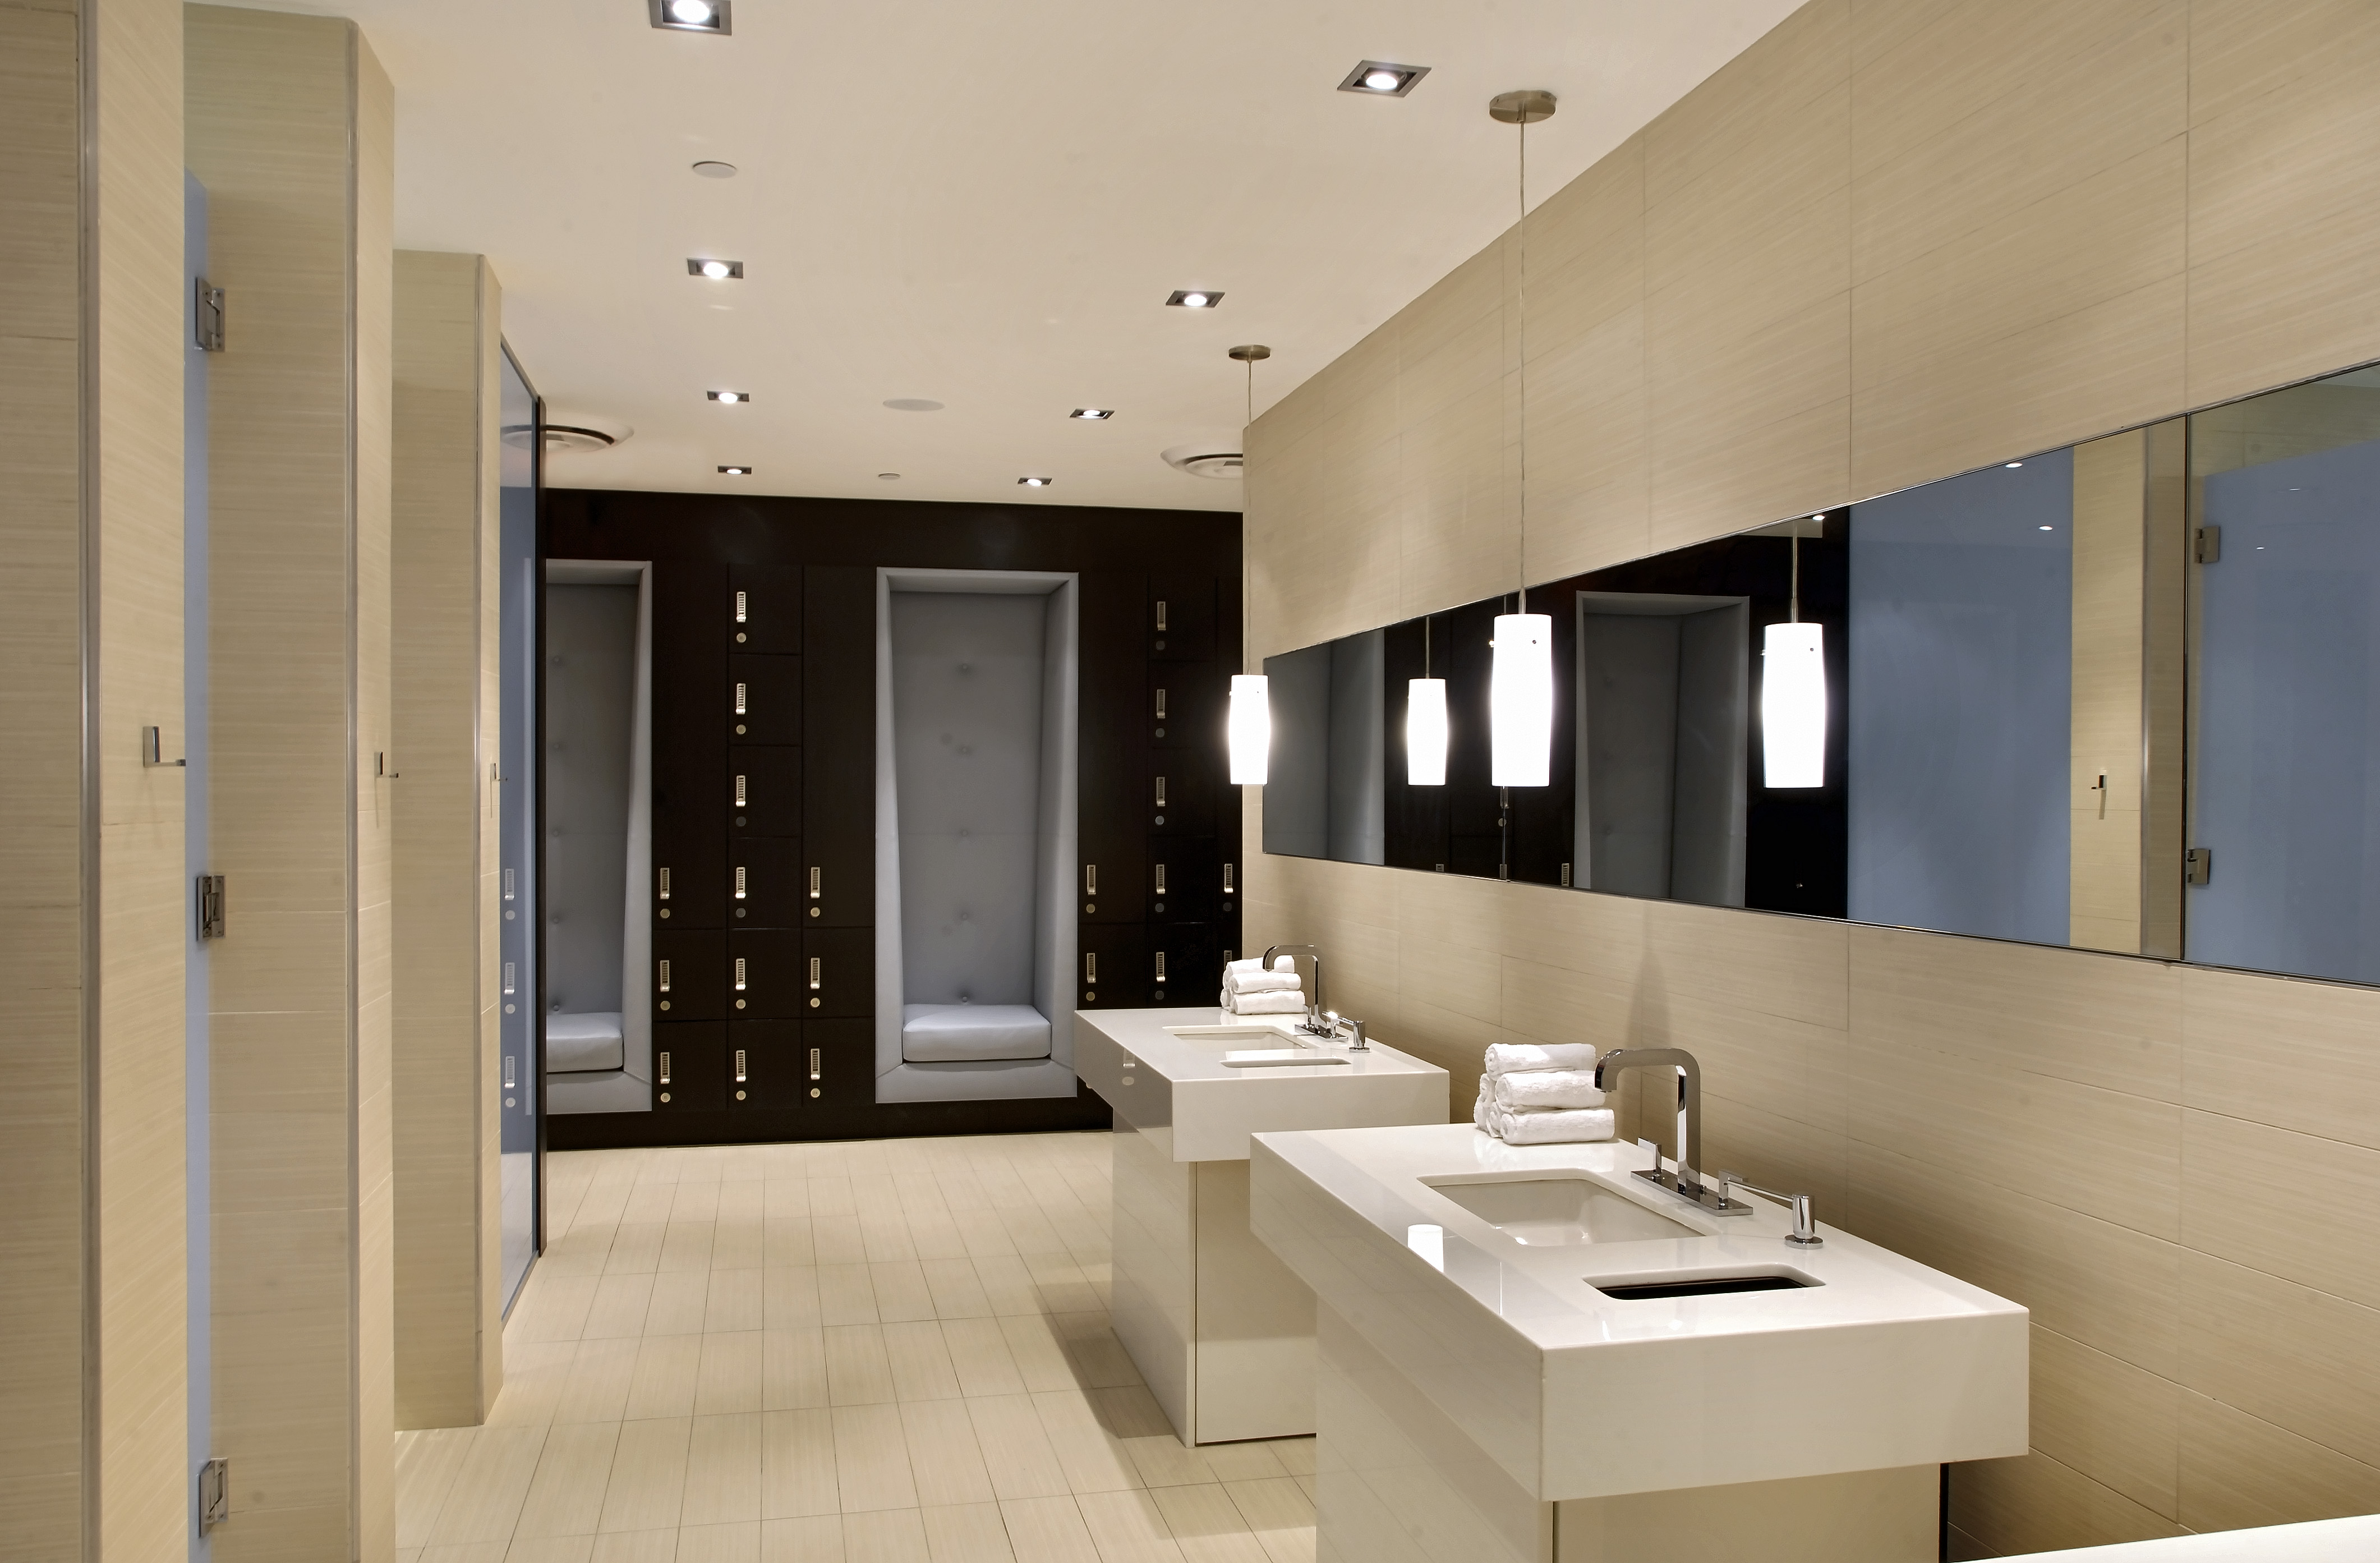 room the women s locker room at sitaras fitness created by anyk design